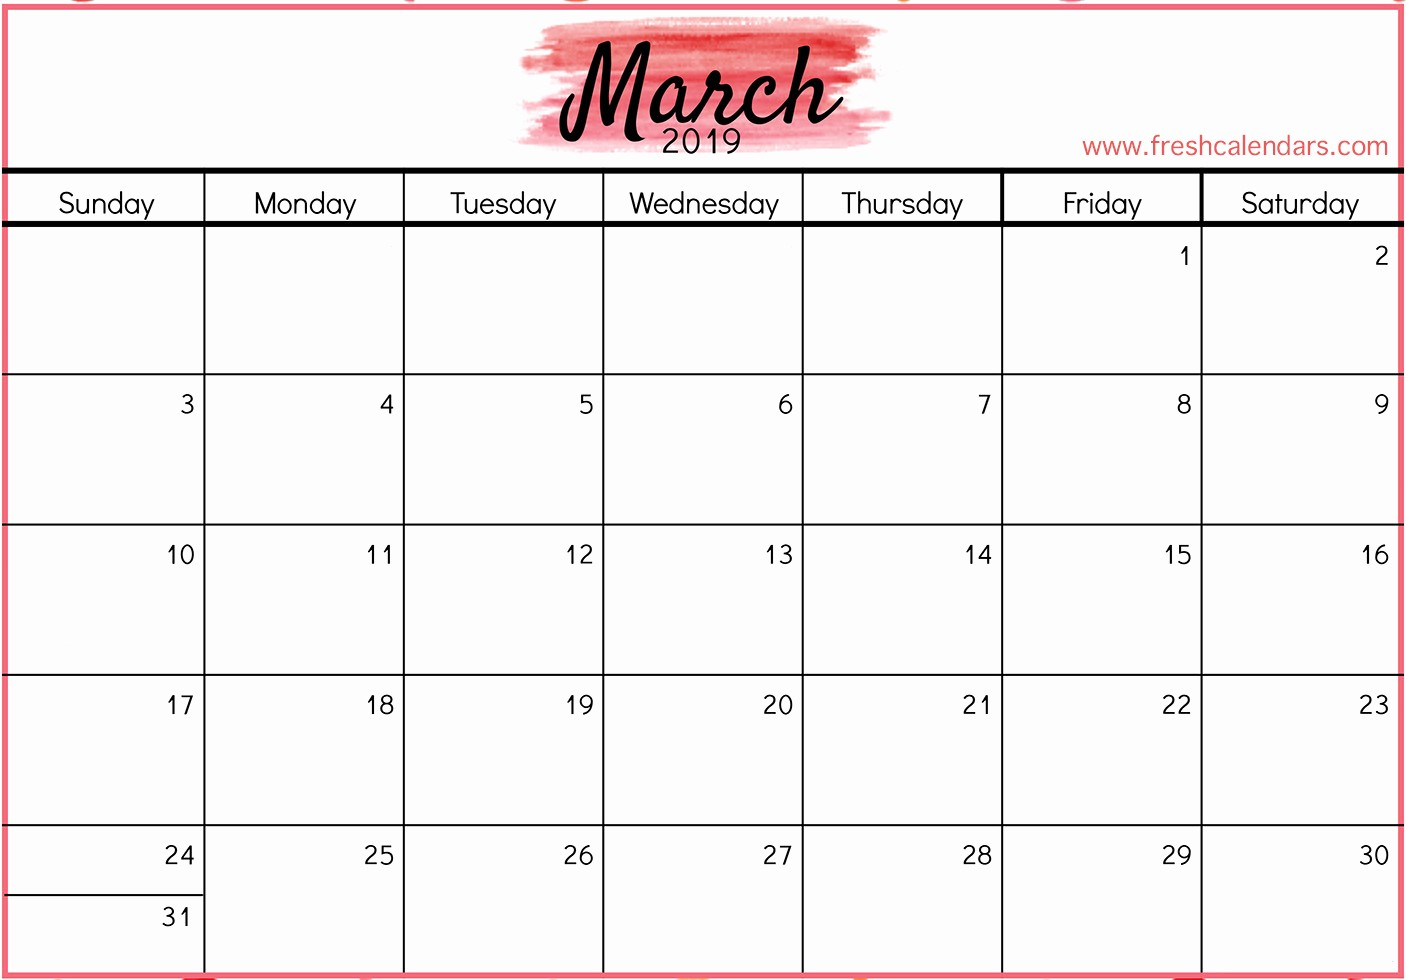 Free Printable Weekly Calendar 2019 Inspirational Printable March 2019 Calendar Fresh Calendars